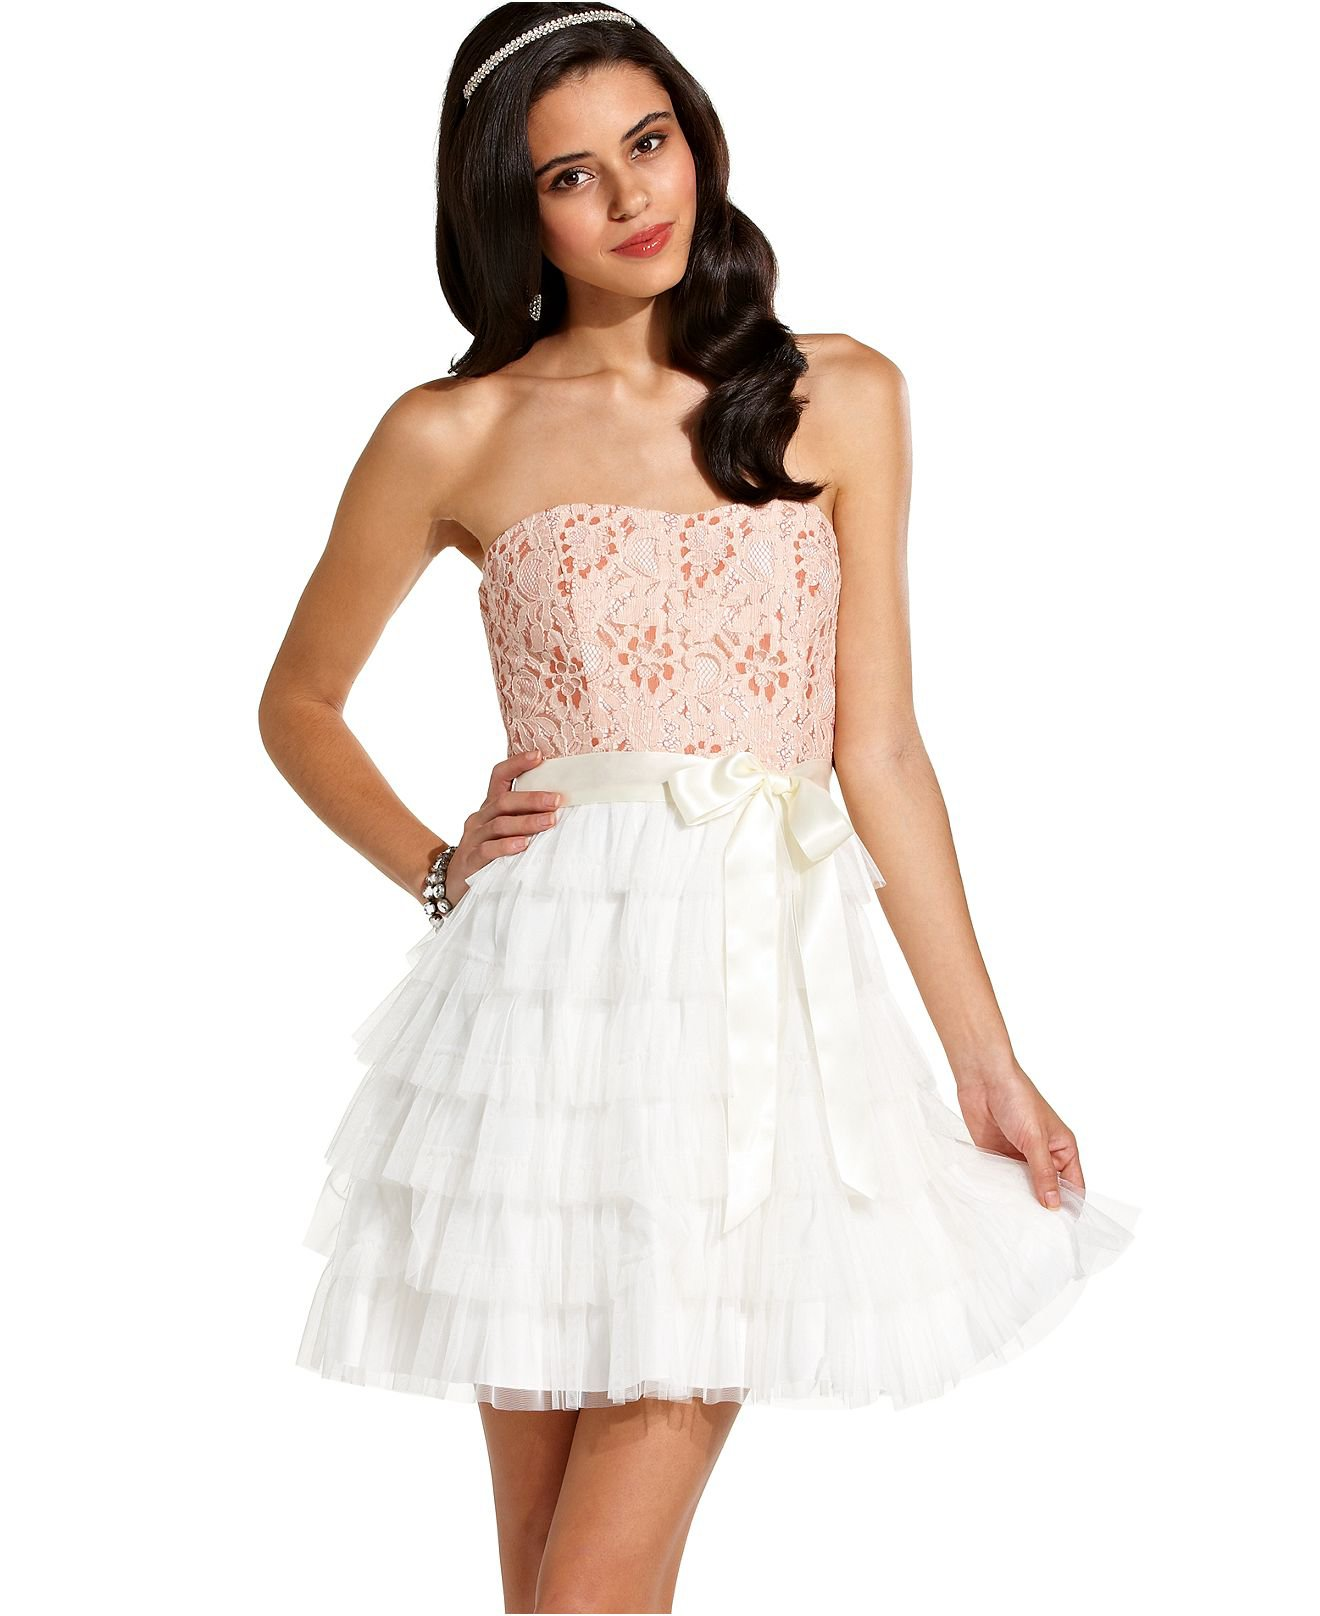 ... , Strapless Lace Tiered A-Line - Juniors Homecoming Dresses - Macy's